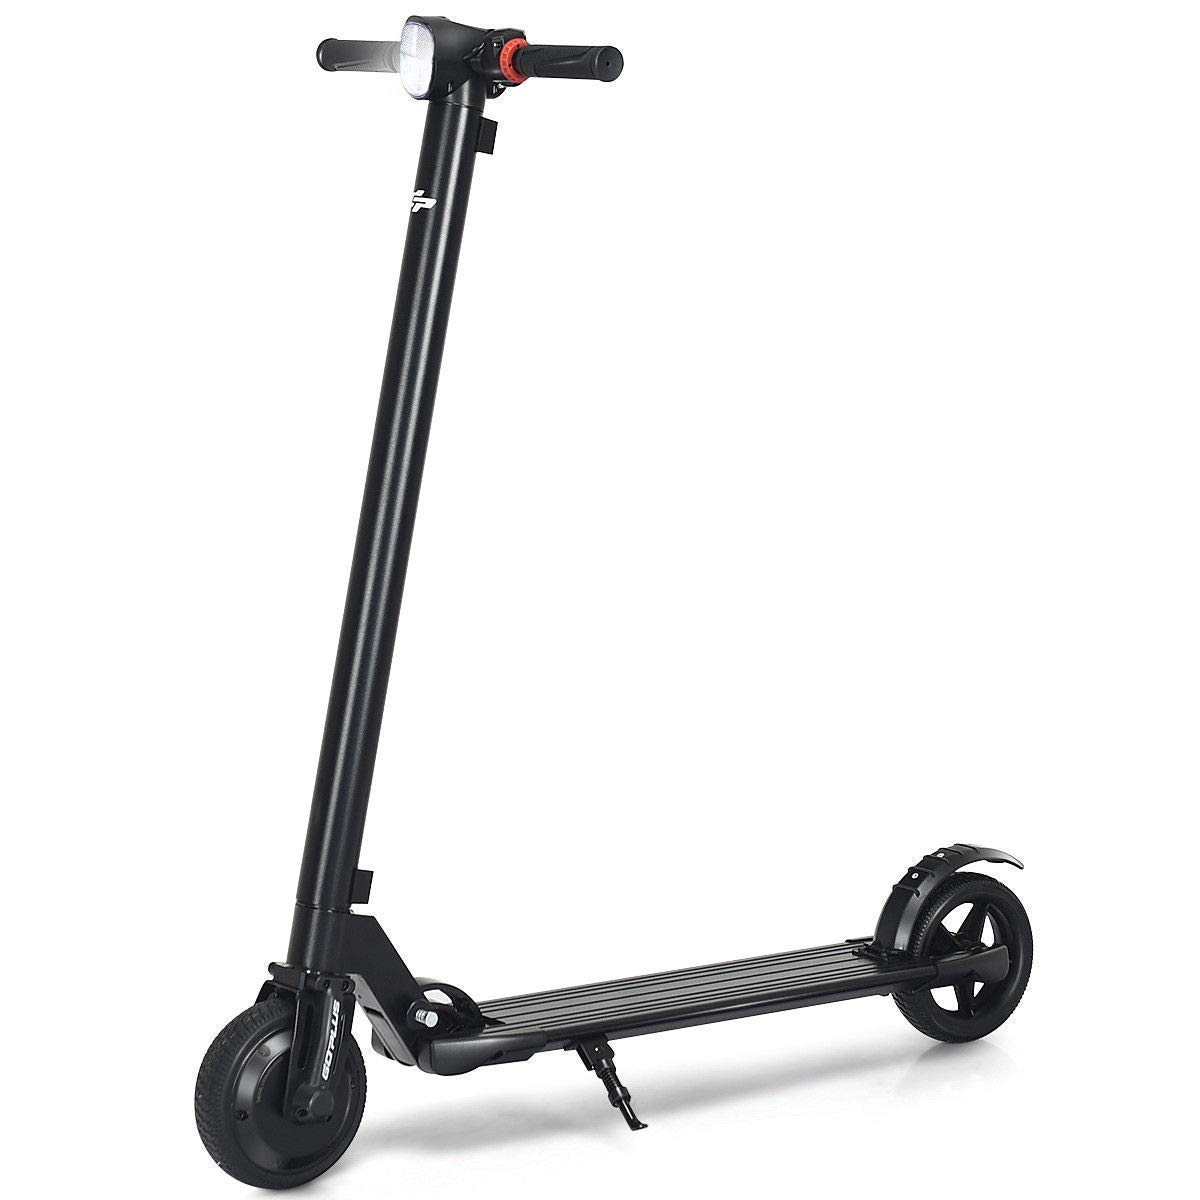 Goplus Foldable Electric Scooter, Ultra-Lightweight Portable Kick Scooter, 14 MPH Up to 6 Miles Long-Range Battery, Headlight, 6.5'' Tires with Cruise Control (Black)